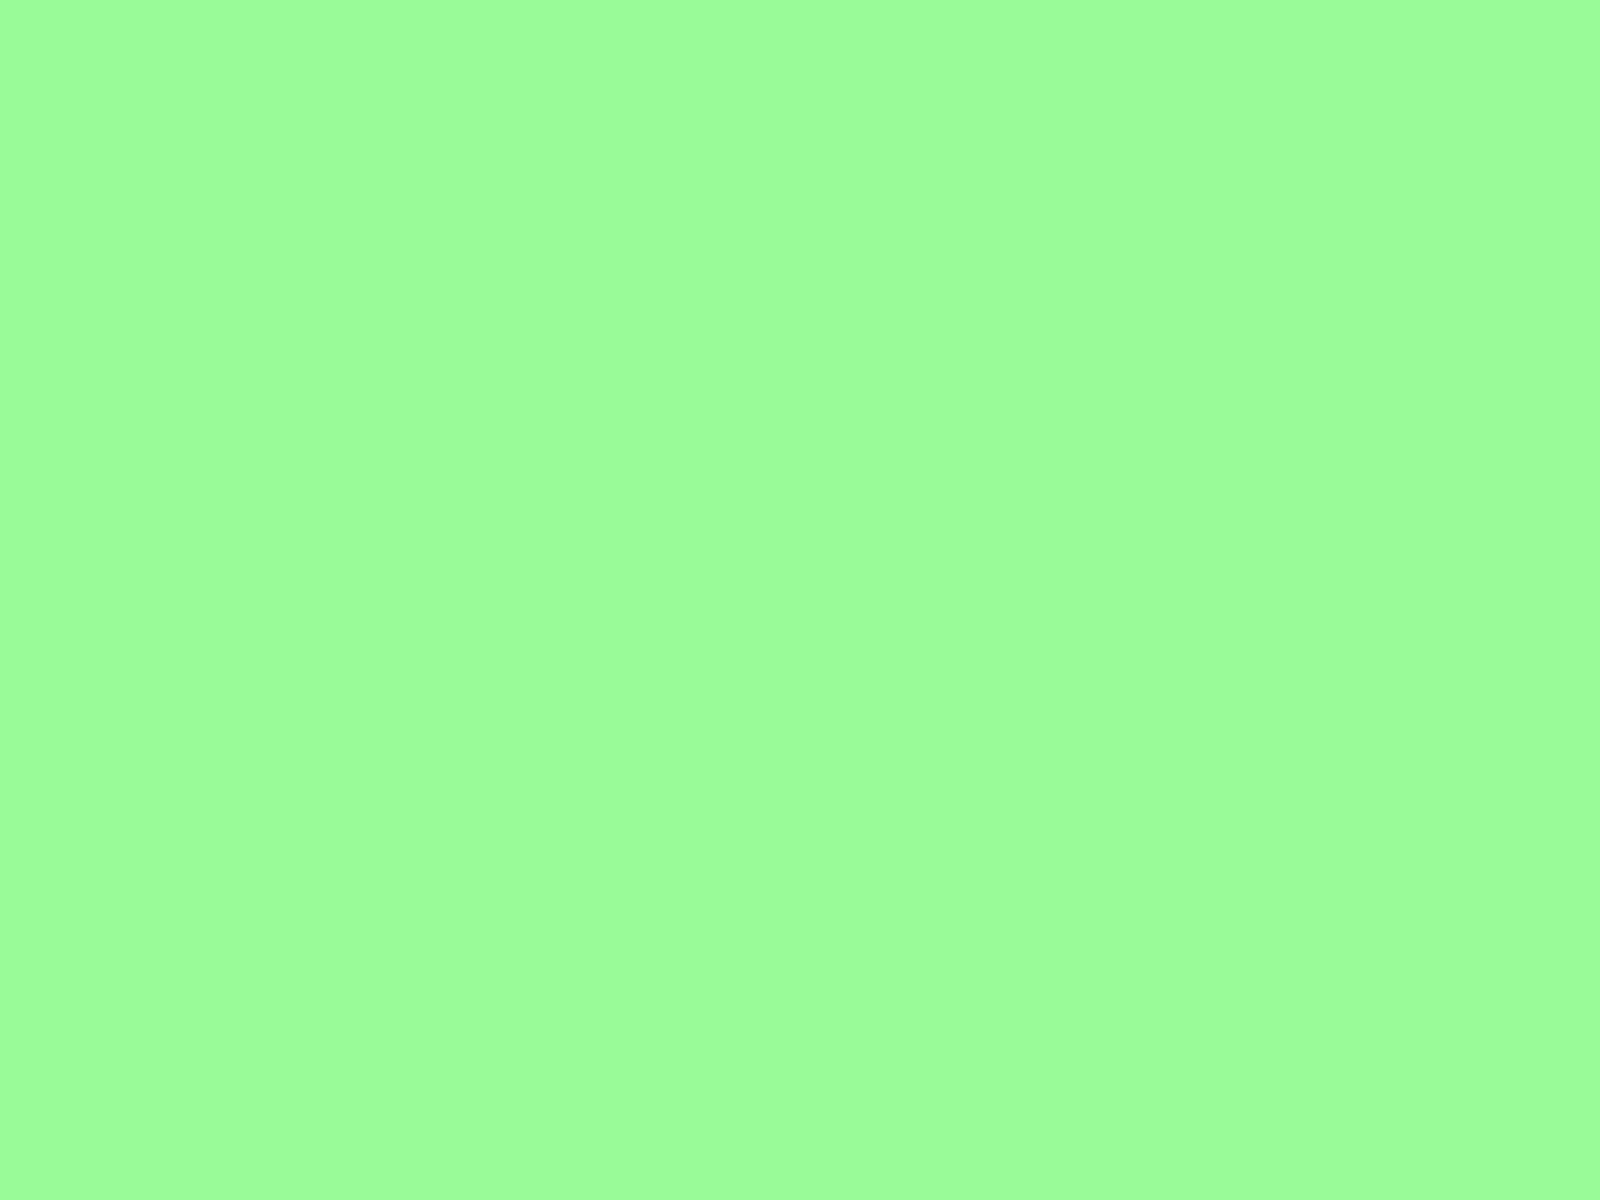 1600x1200 Pale Green Solid Color Background